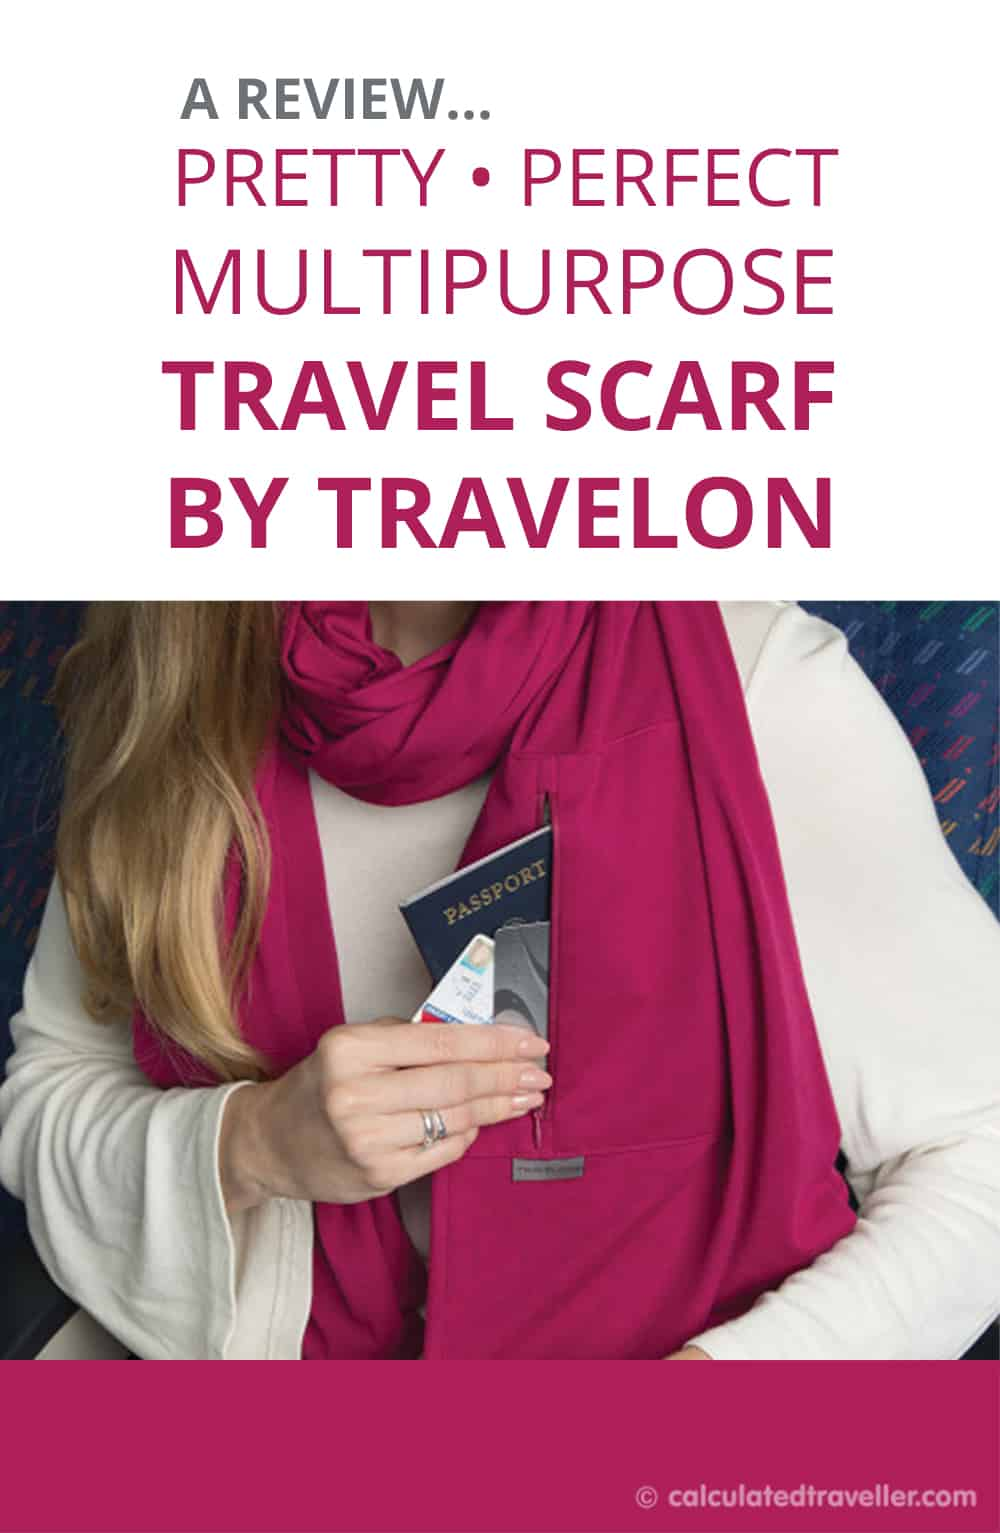 A Pretty Perfect Multipurpose Travel Scarf by Travelon. A review by Calculated Traveller Magazine  |  #Review #Travelon #travel #scarf #RFID #security #packing